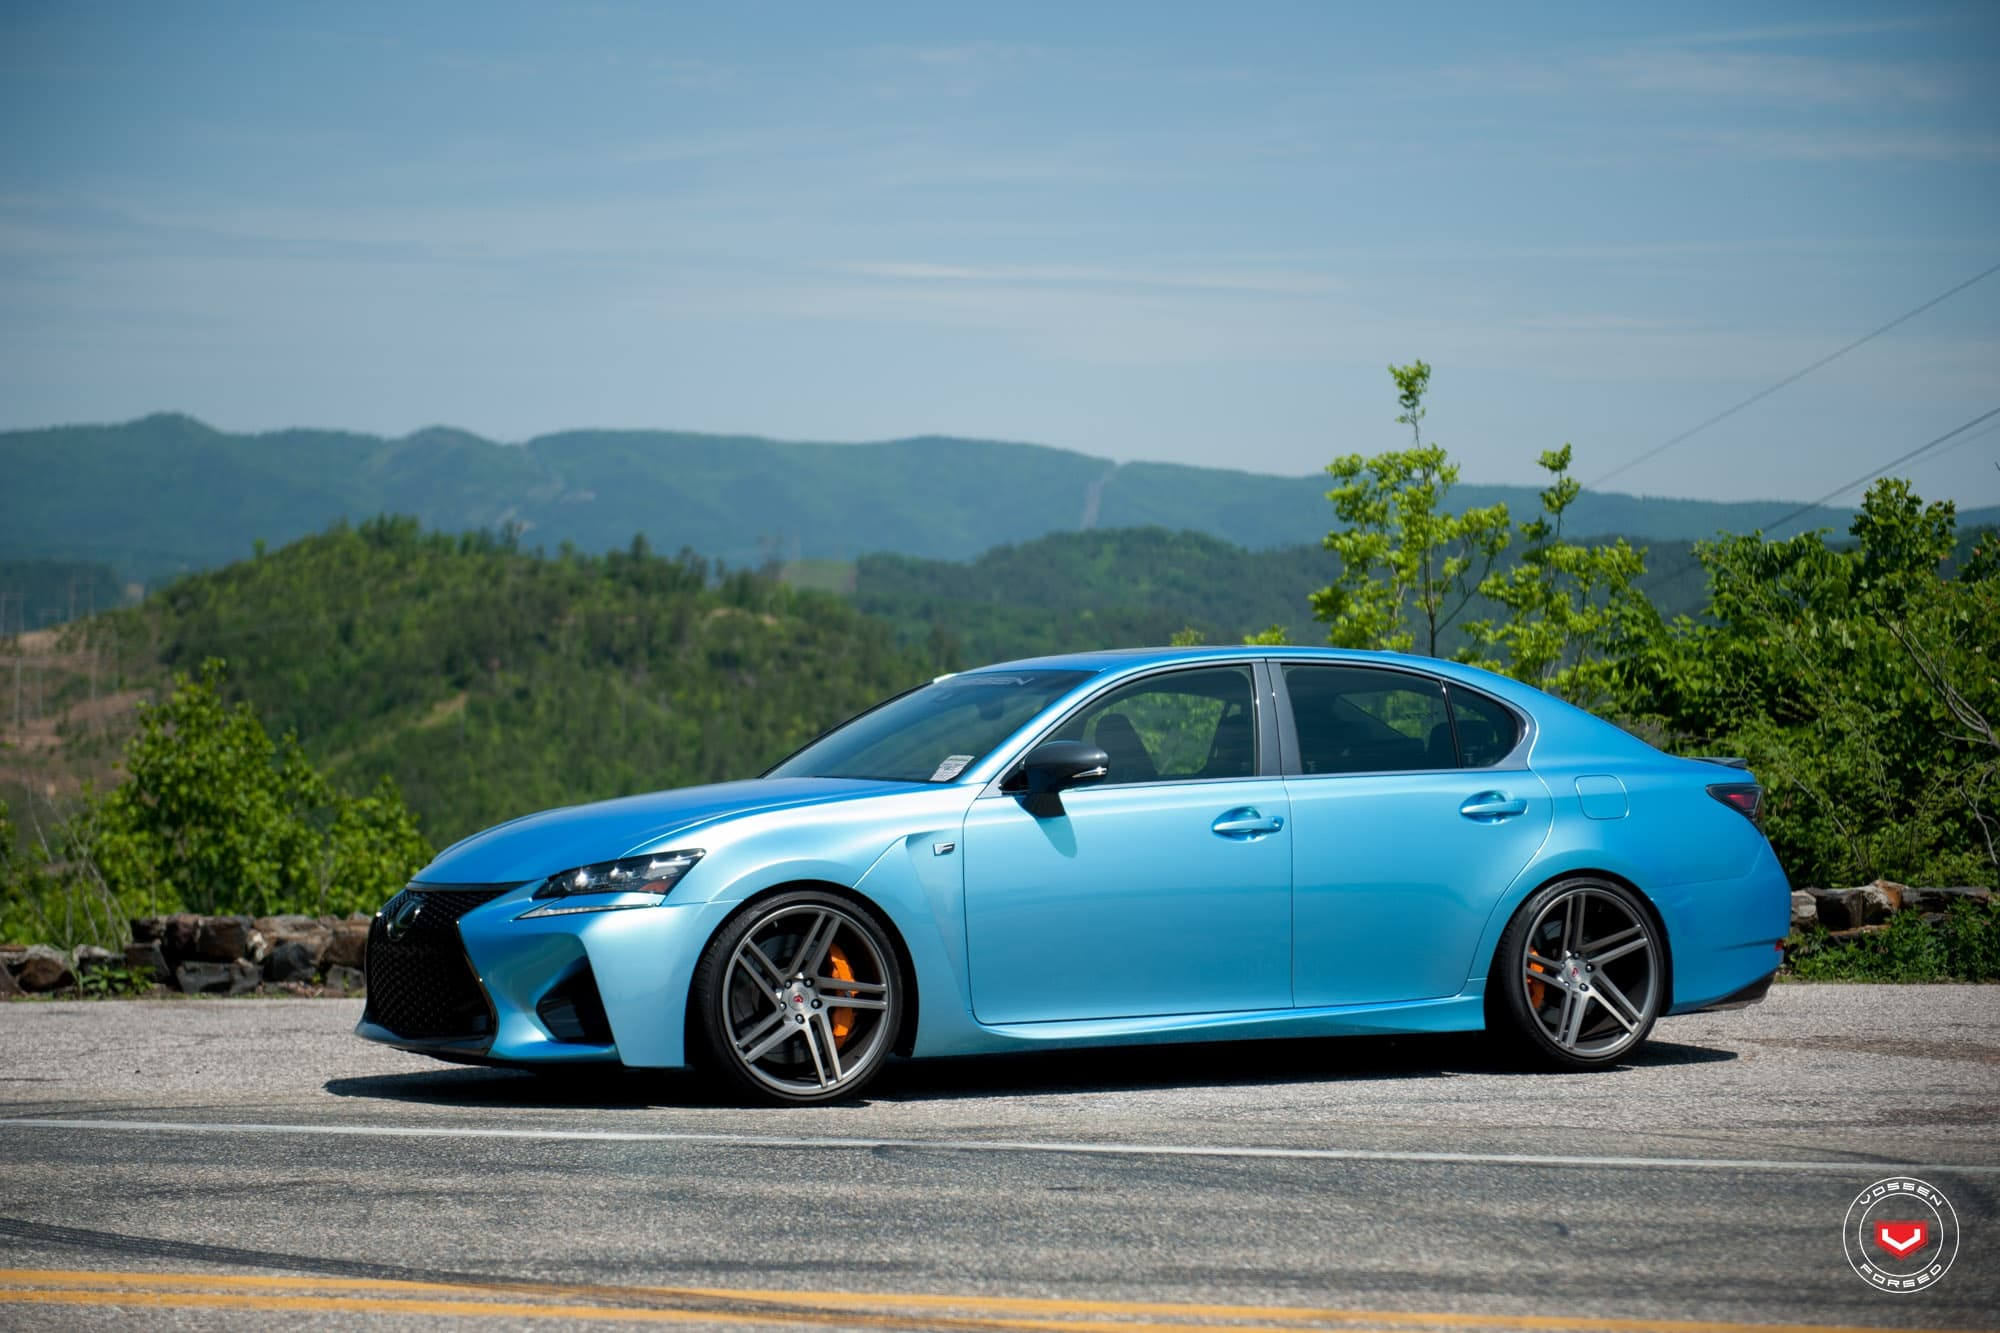 lexus gsf 2016 wallpapers hd sedan interior blue custom